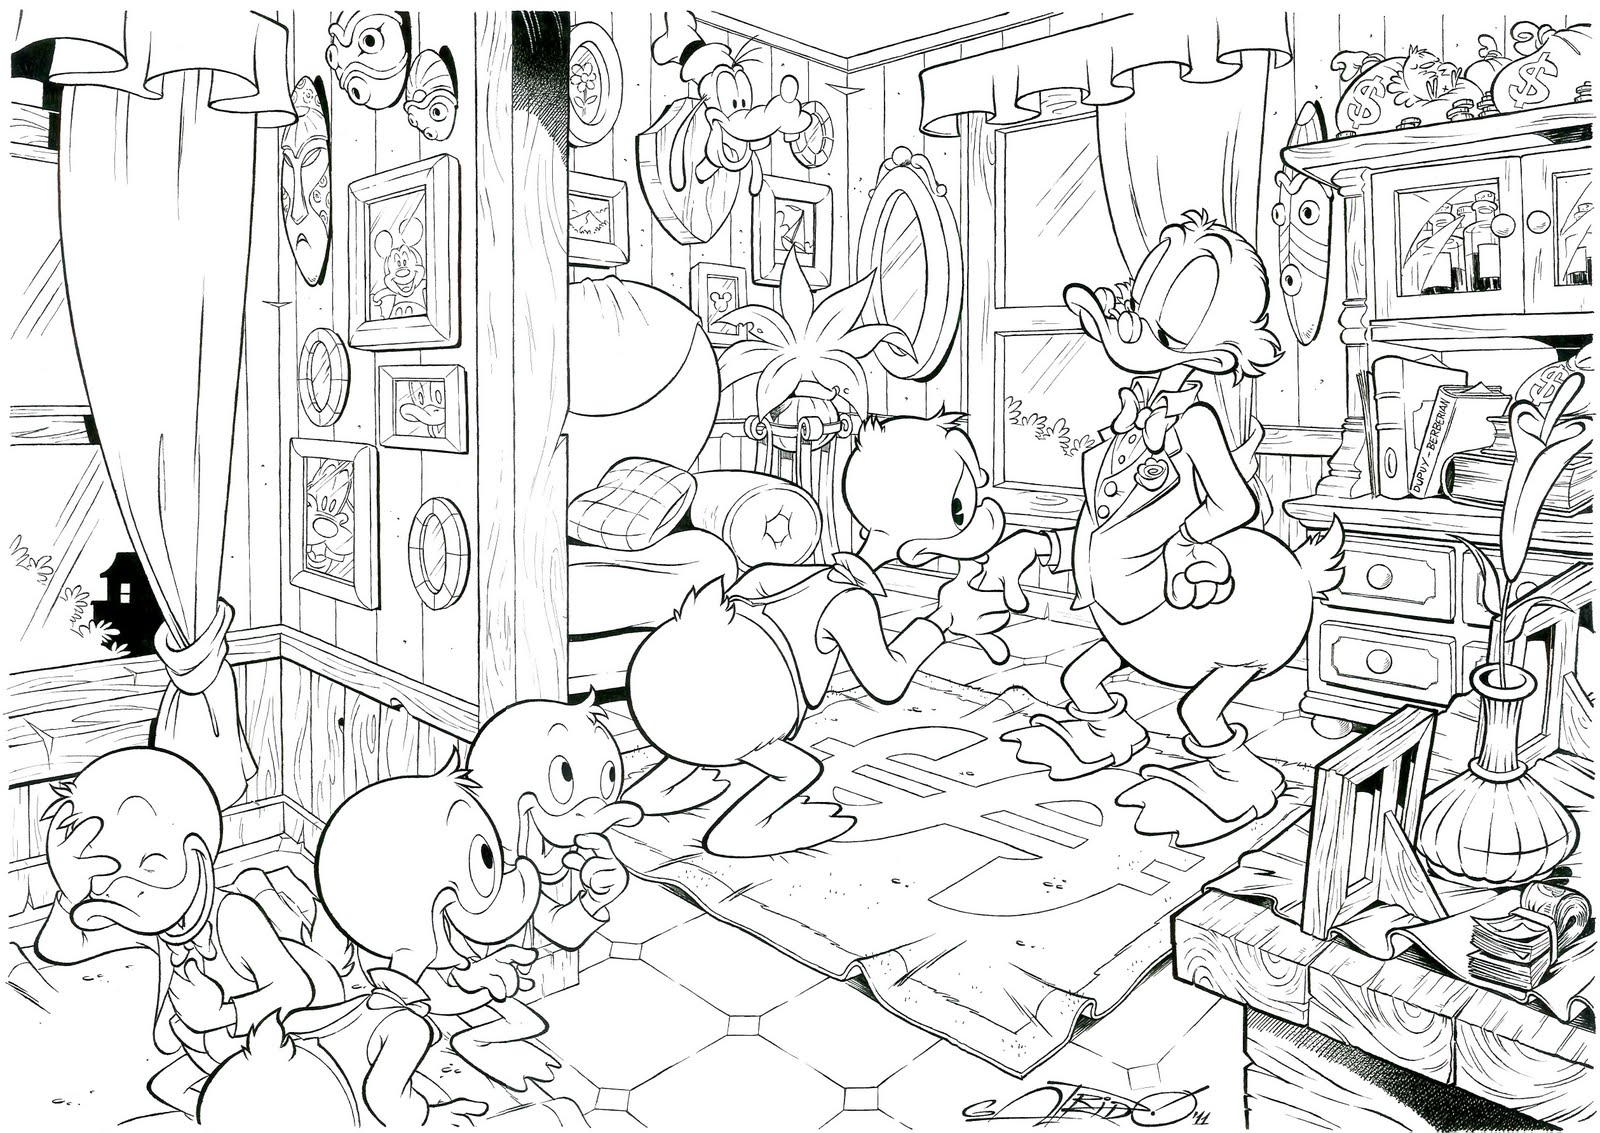 Coloring games donald duck - Donald Duck Coloring Pages